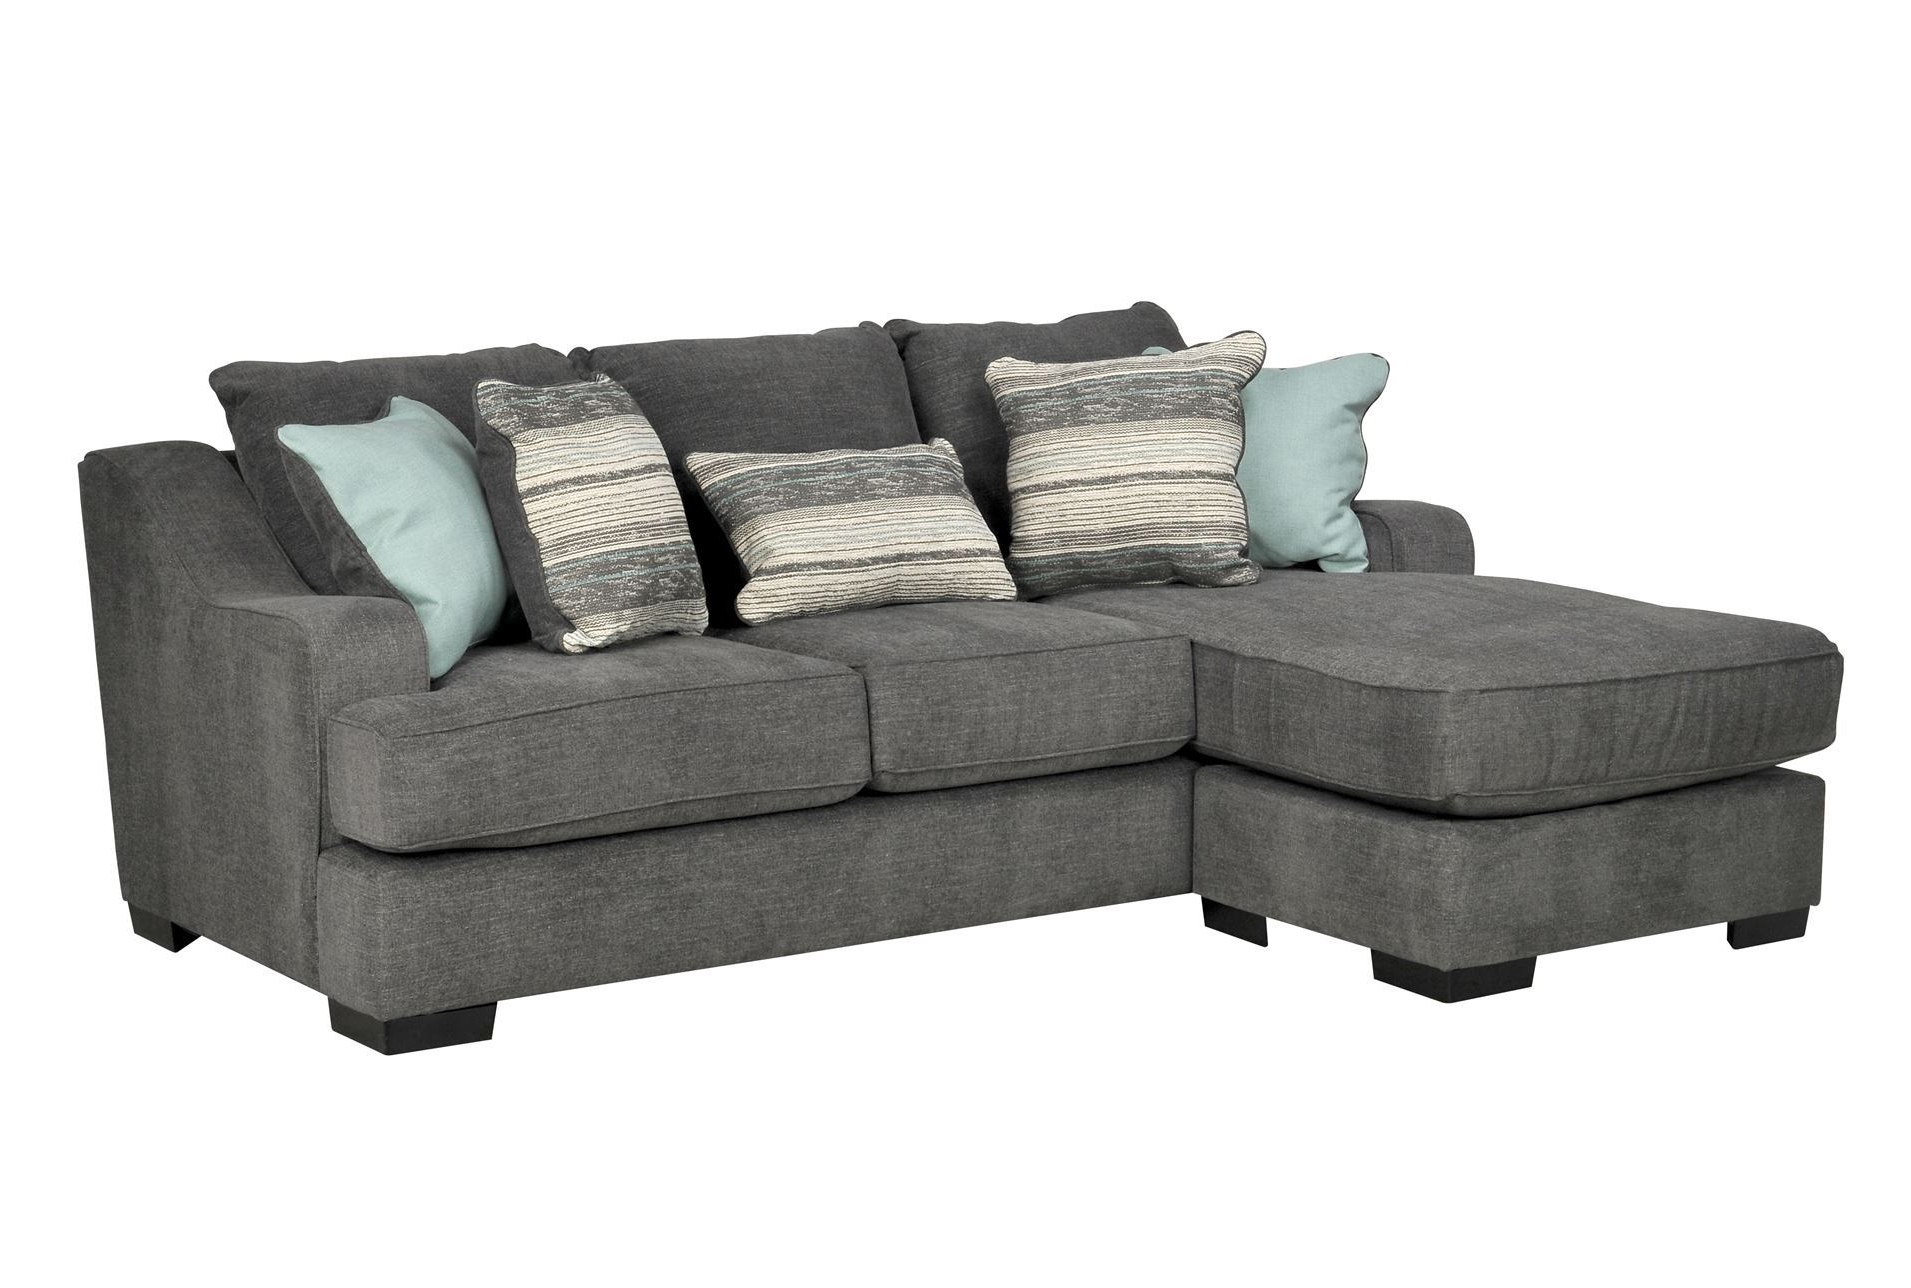 Aquarius Dark Grey Sofa Chairs For Most Recent Colour Slipcovers Pillows Covers Couch Placement Glamour Schemes (View 2 of 20)